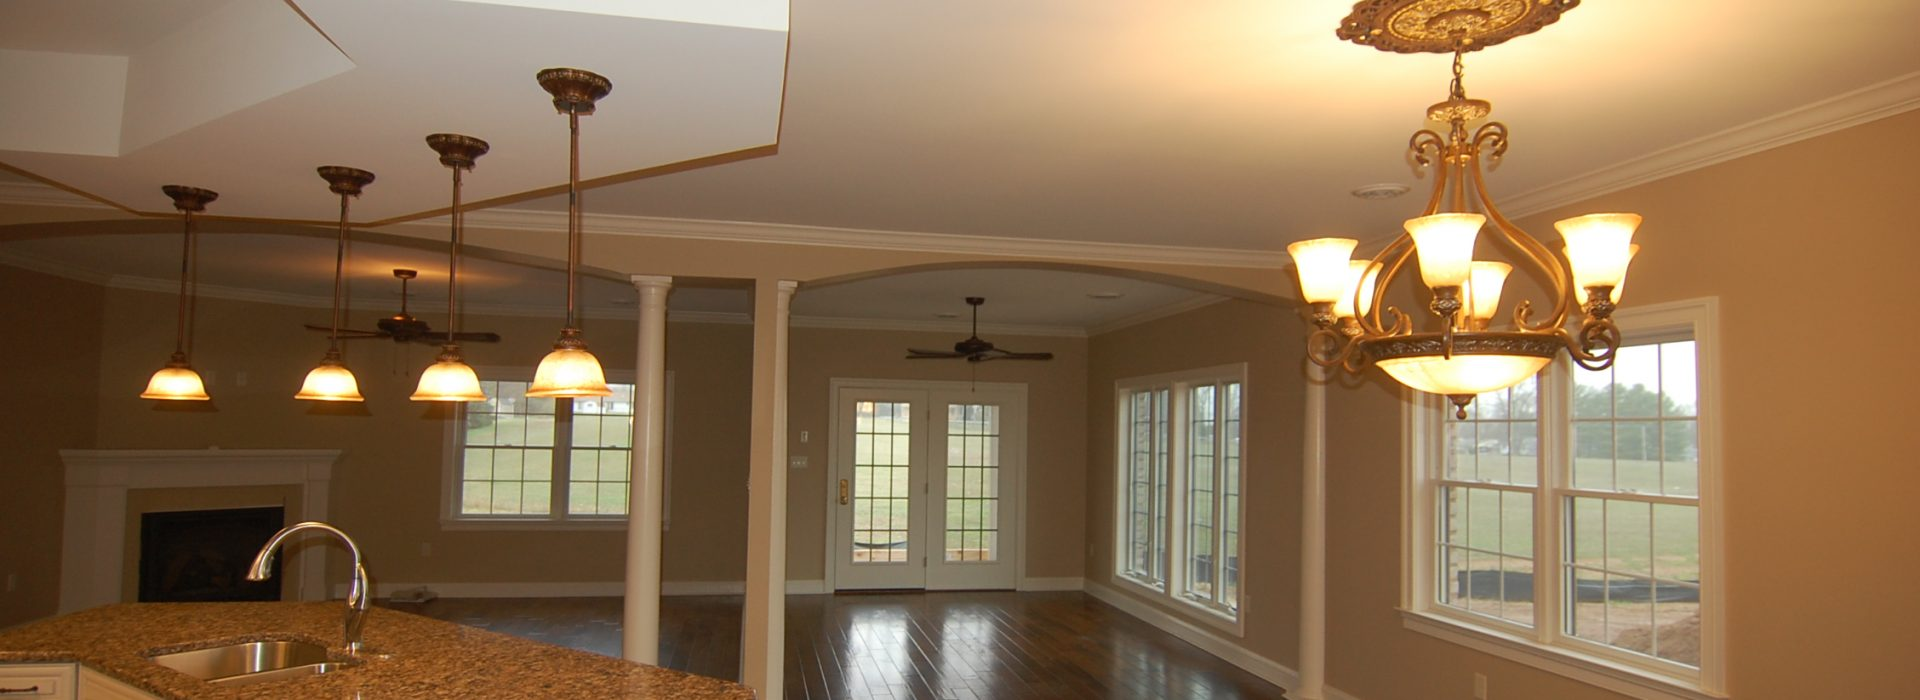 Affordable 55 Plus Adult Living Homes In Hagerstown, MD—EMERALD POINTE